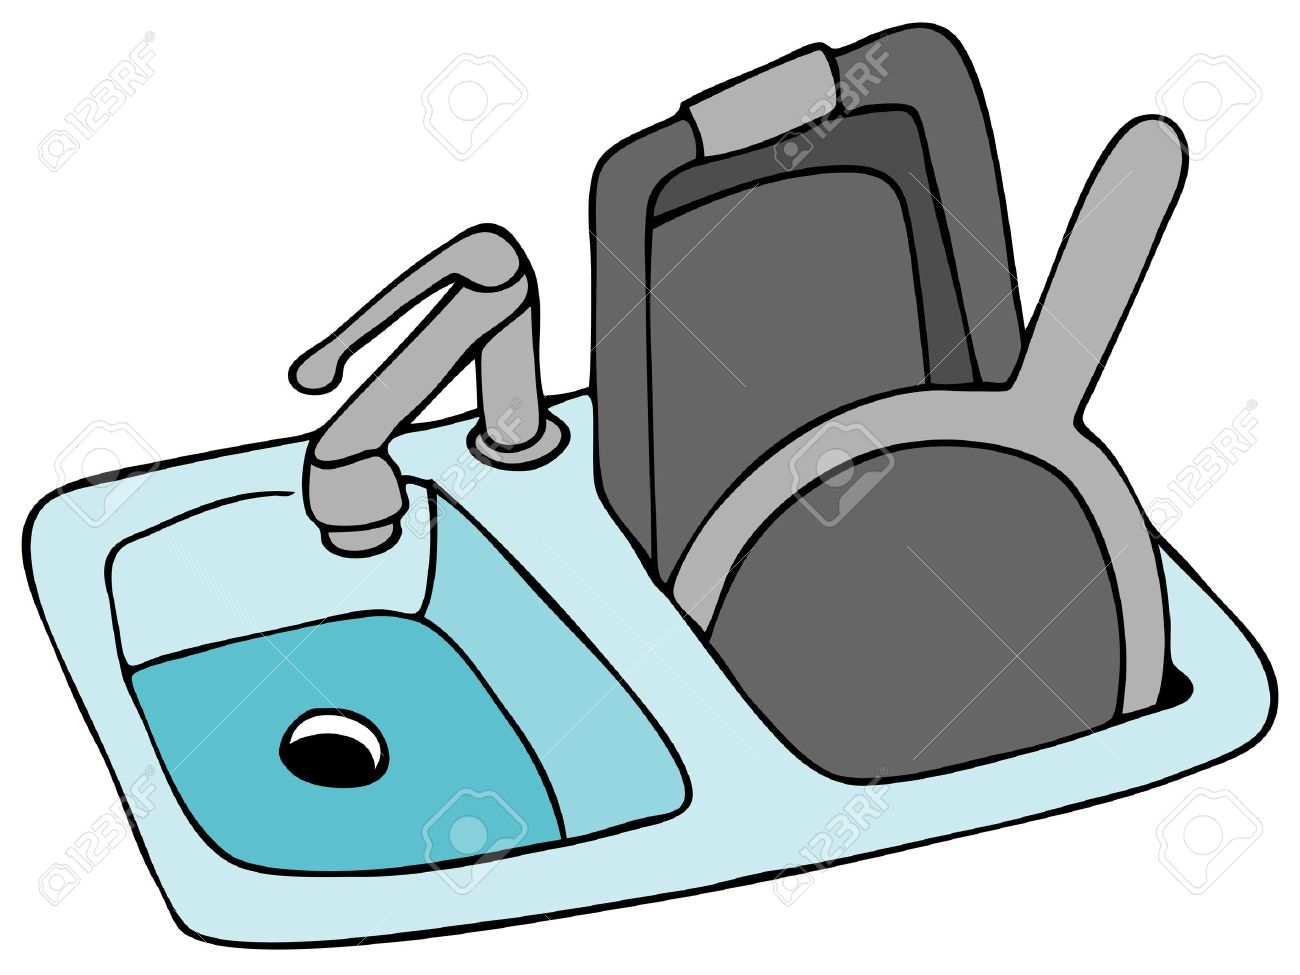 an image of a kitchen sink with pans royalty free cliparts vectors rh 123rf com Kitchen Sink Drawing everything but the kitchen sink clipart